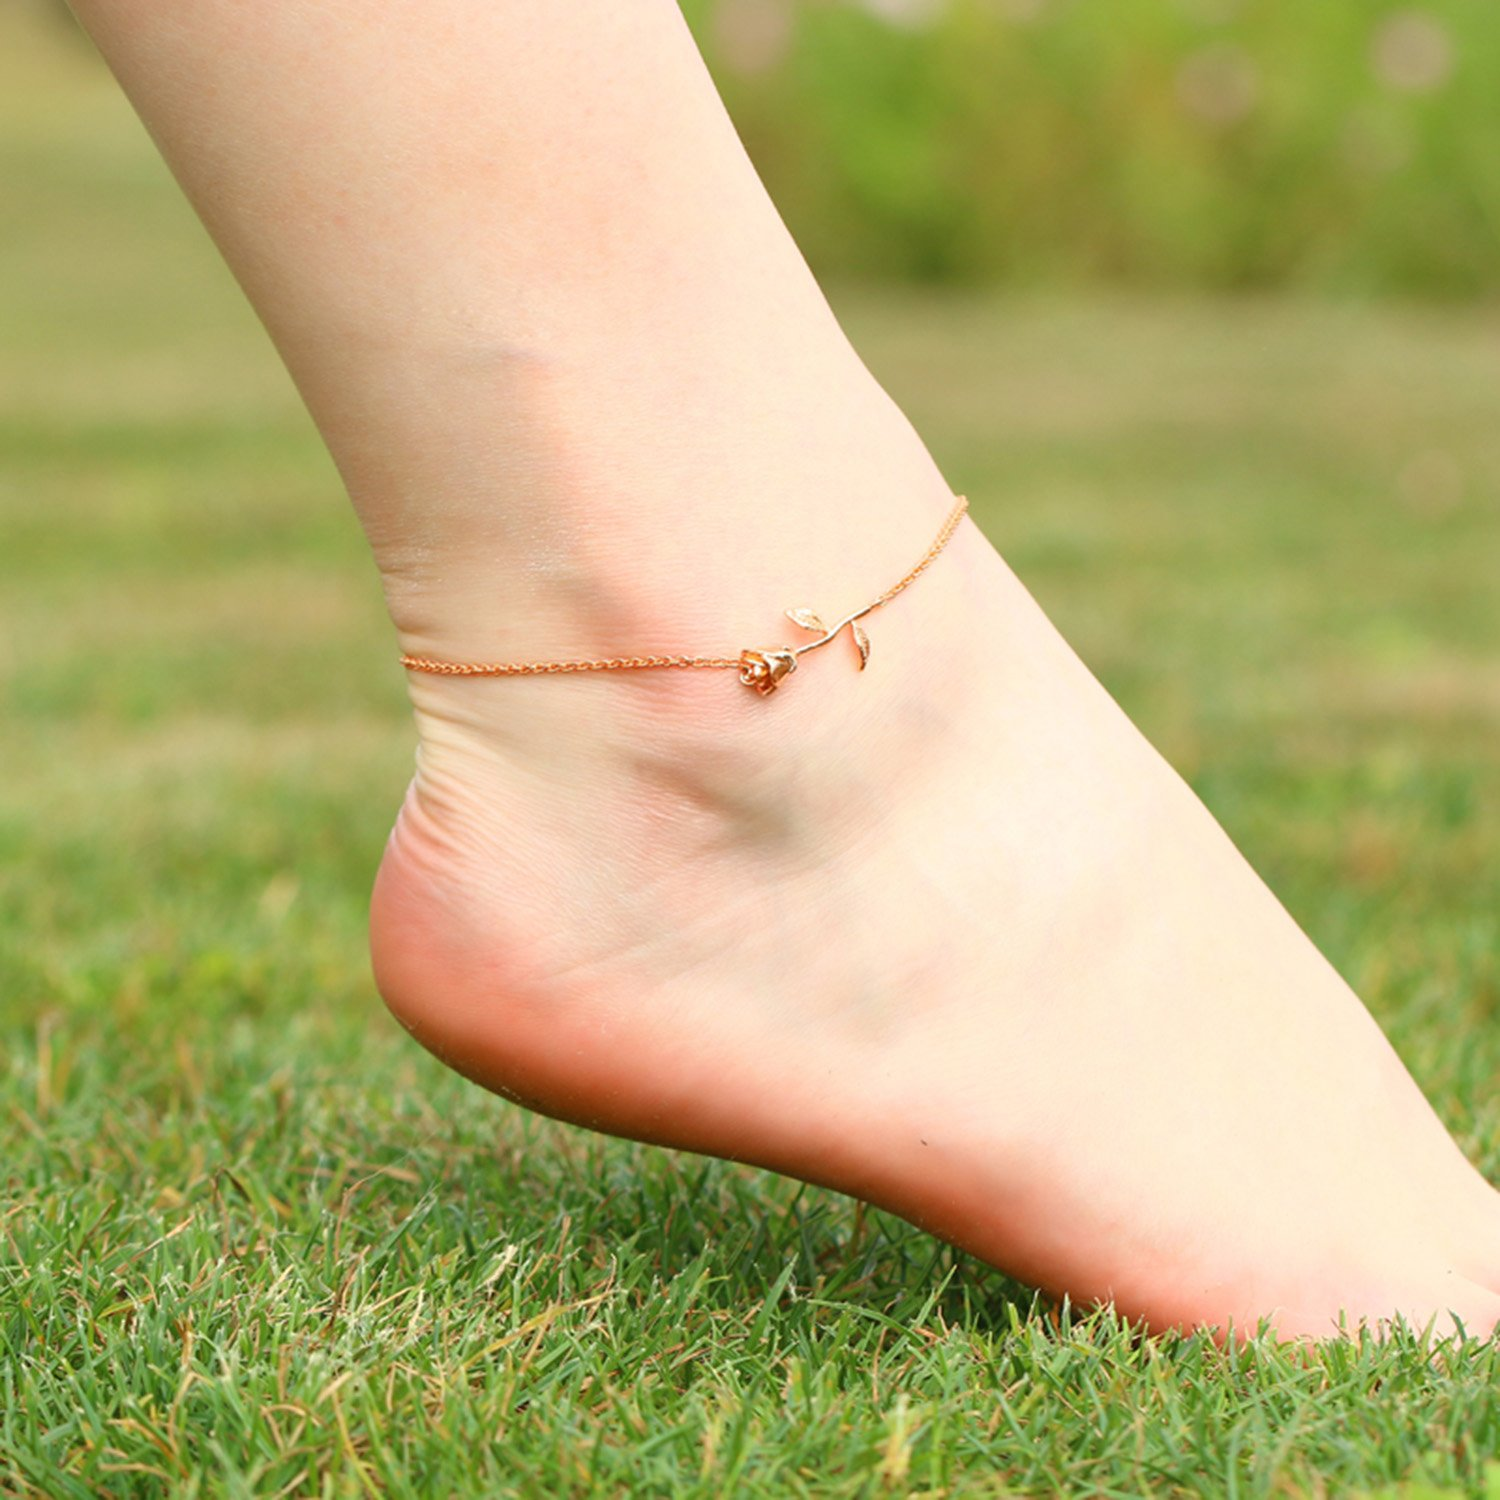 3UMeter Rose Women Girls Anklets Jewelry Exquisite Rose Gold Electroplate Brass Anklets Female, Great Foot Decoration Gift Valentine Mother's Day Birthday by 3UMeter (Image #3)